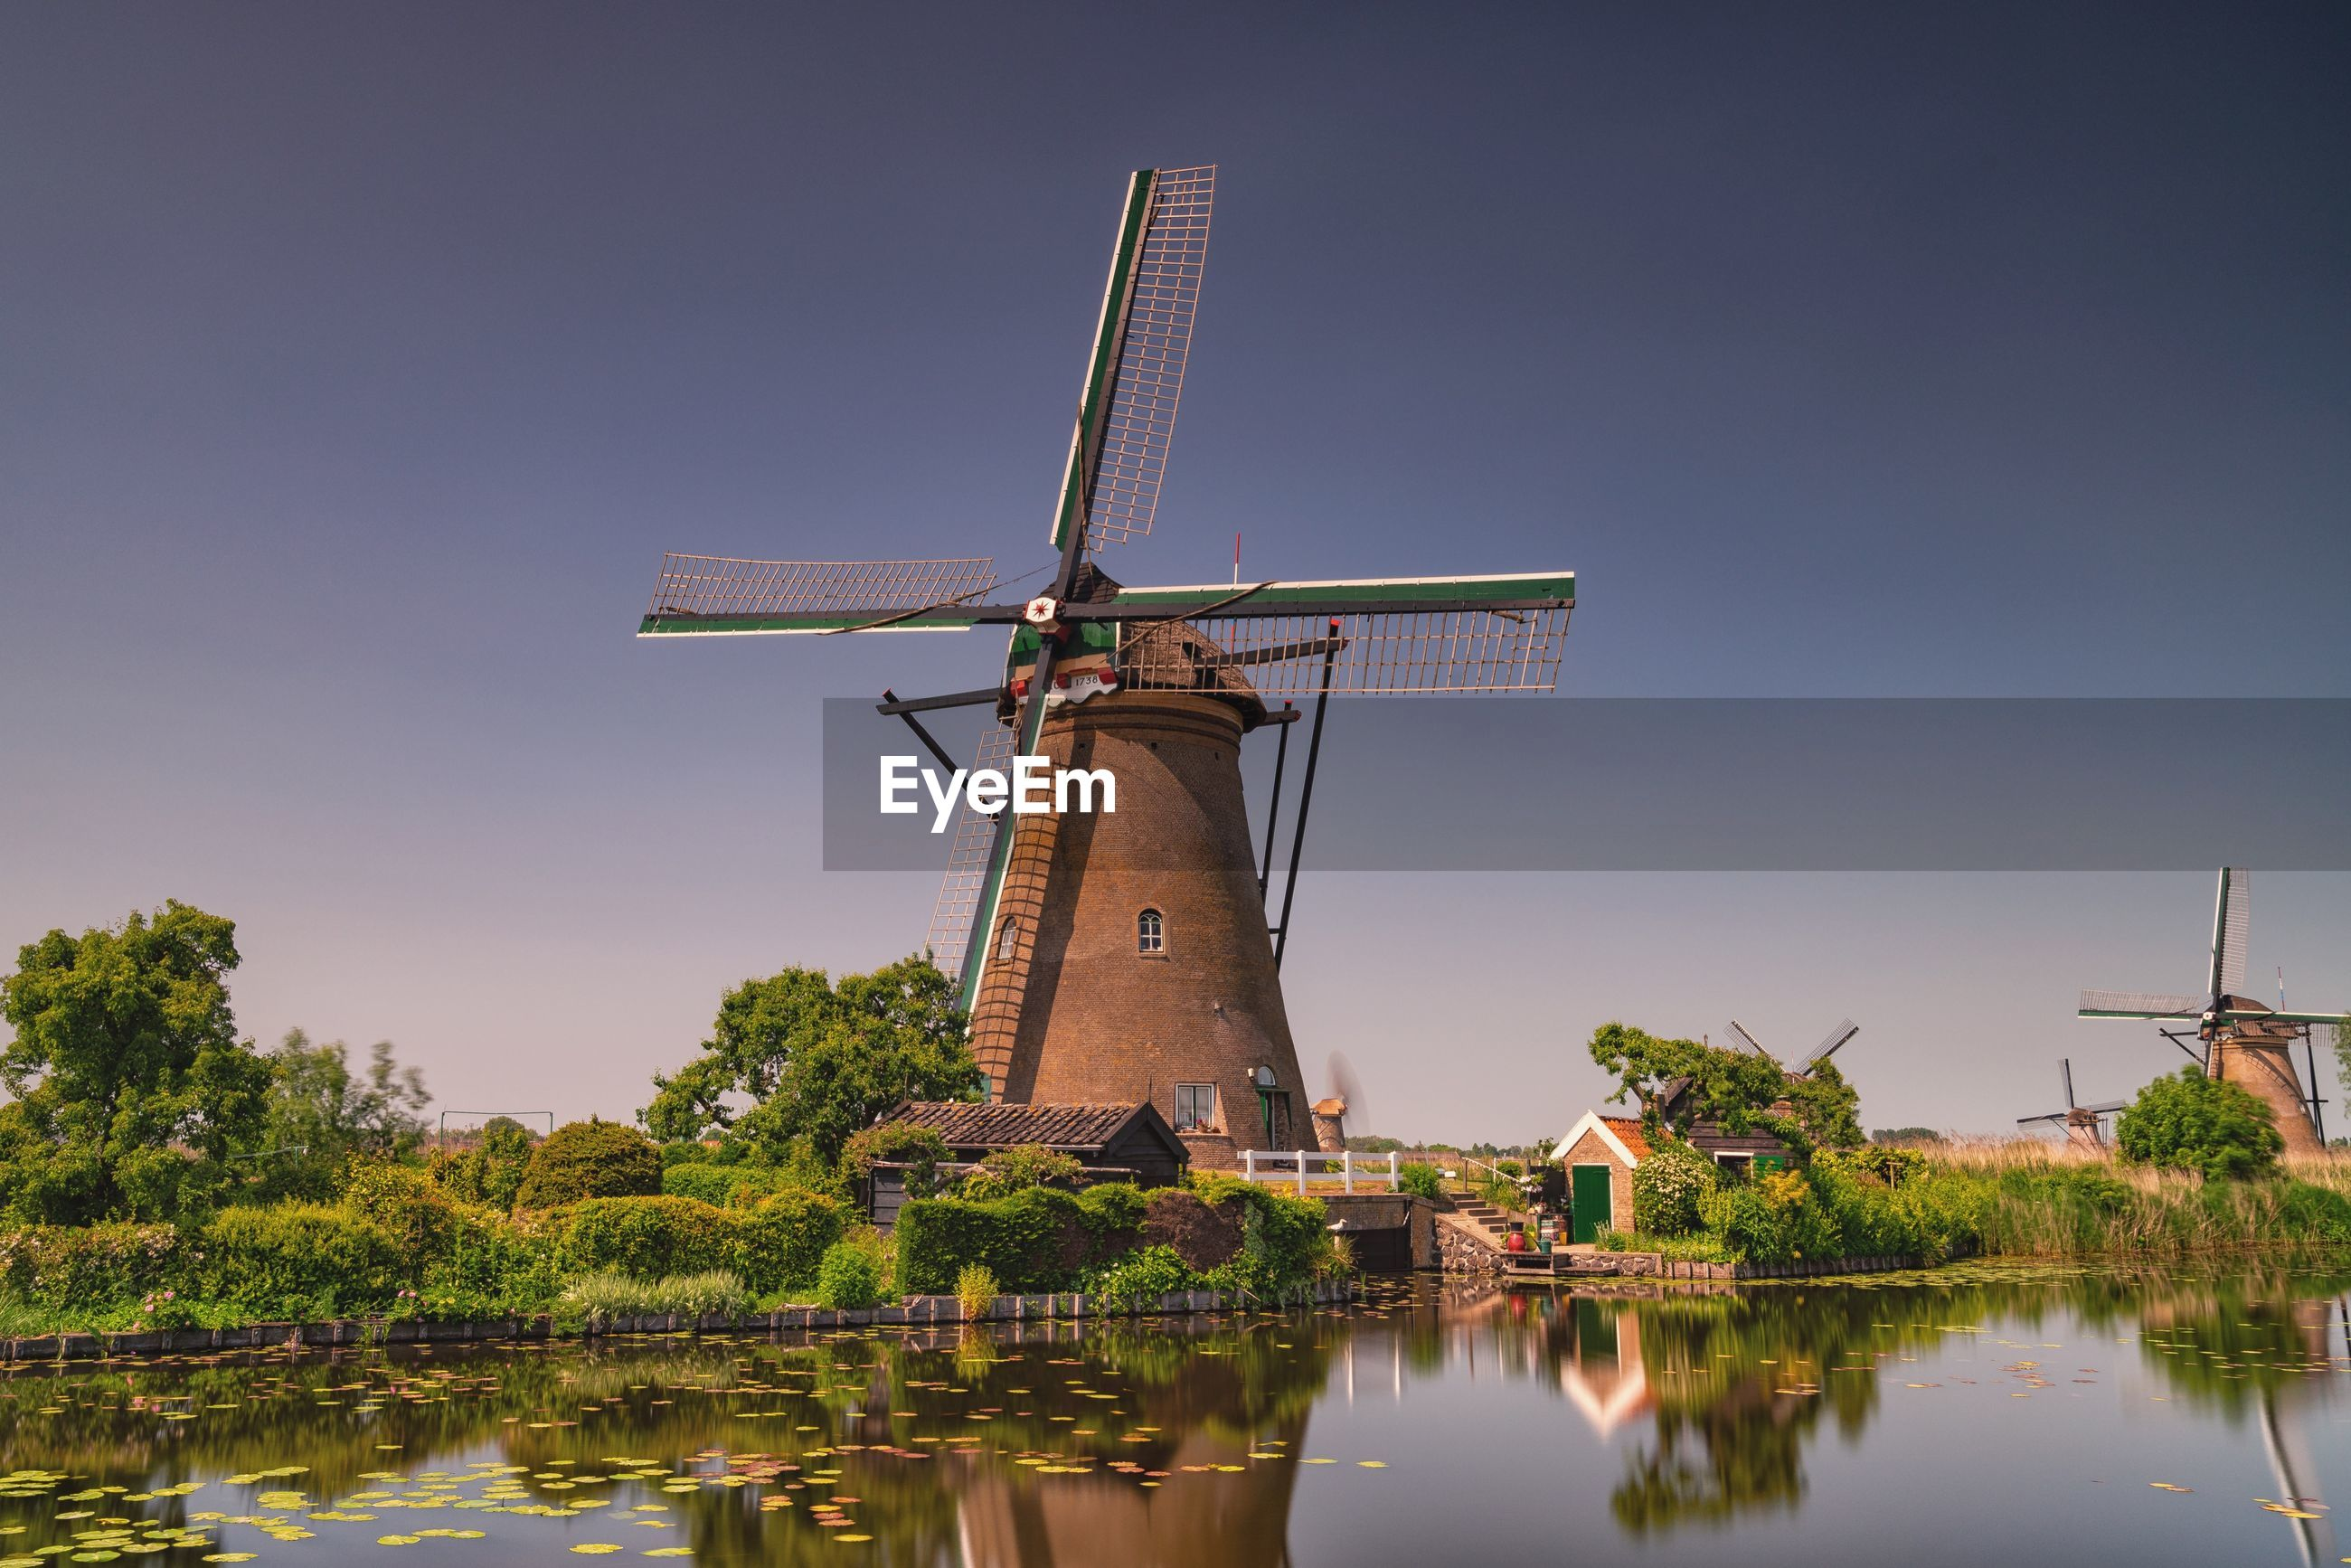 Traditional windmill by lake against clear sky